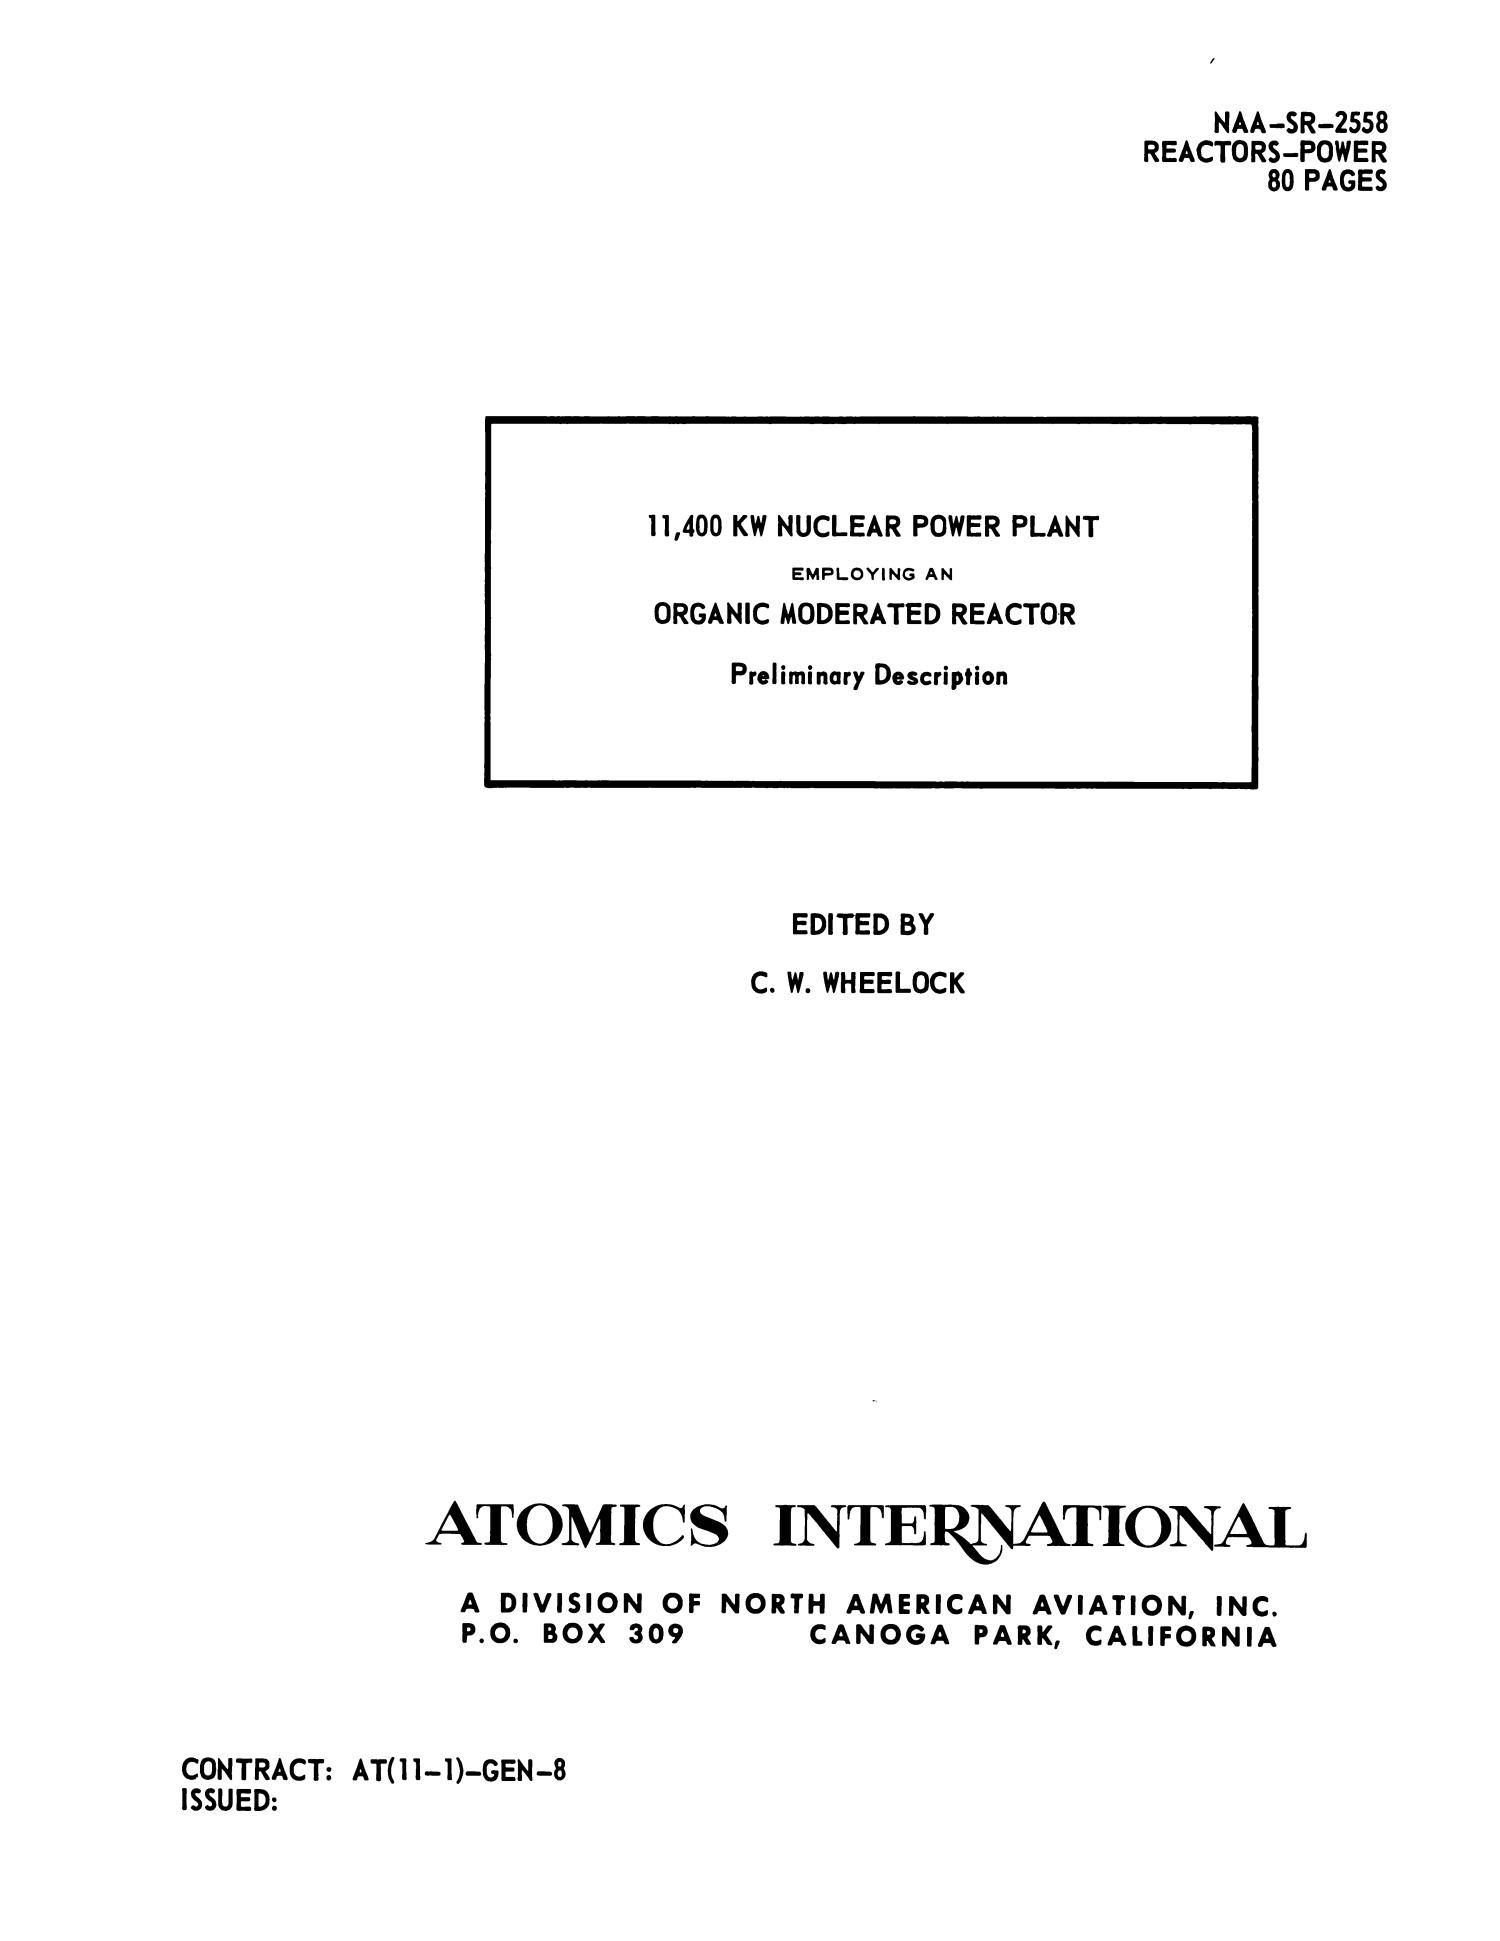 11,400 KW Nuclear Power Plant Employing an Organic Moderated Reactor: Preliminary Description                                                                                                      Title Page